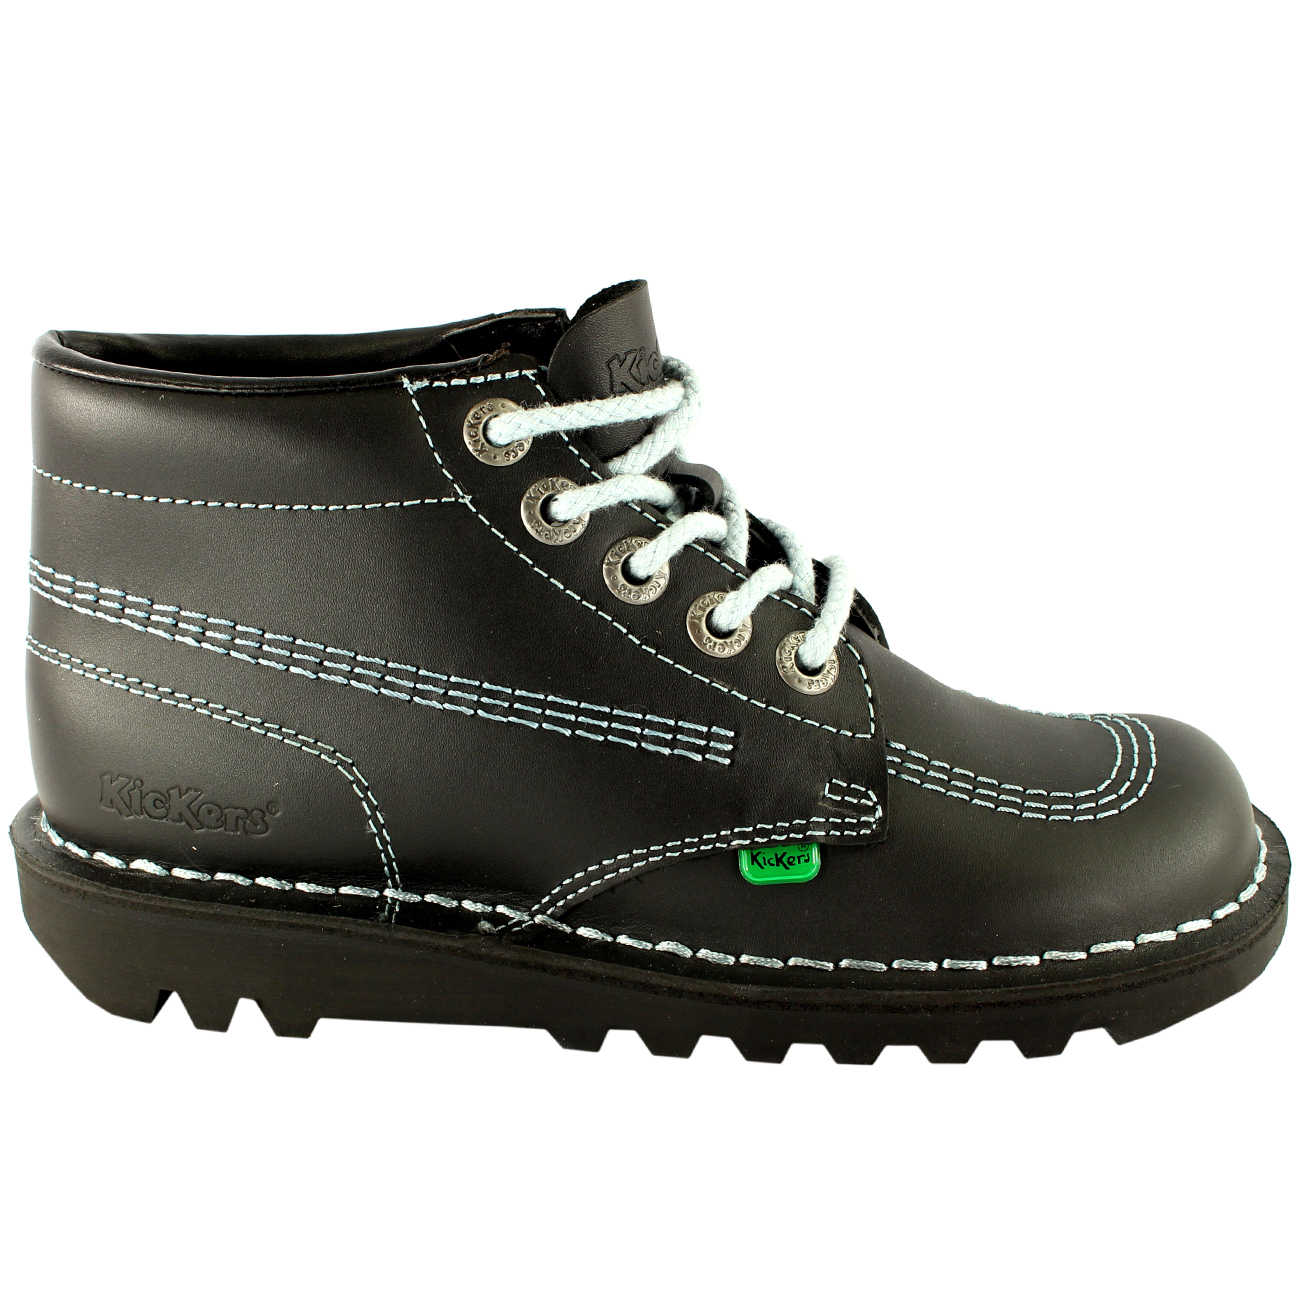 Uomo Kickers Kick Hi Leder Work Classic Lace Up Office Work Leder Stiefel Schuhes UK 7-12 3279ae